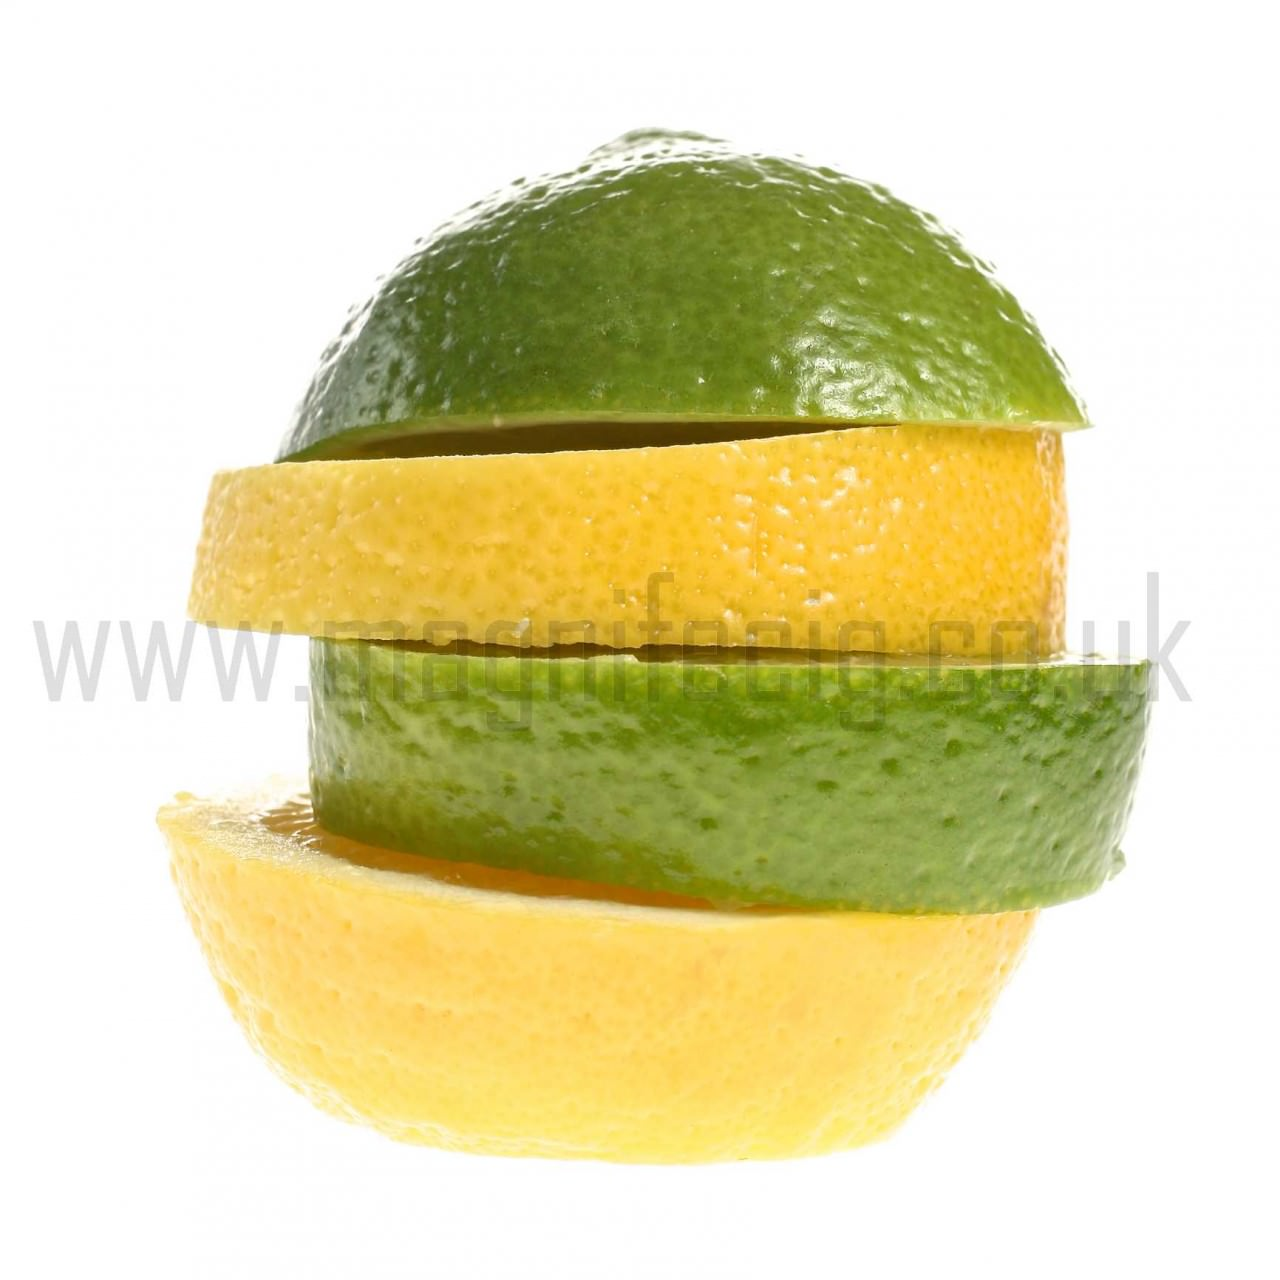 Magnifecig Lemon Lime E Liquid